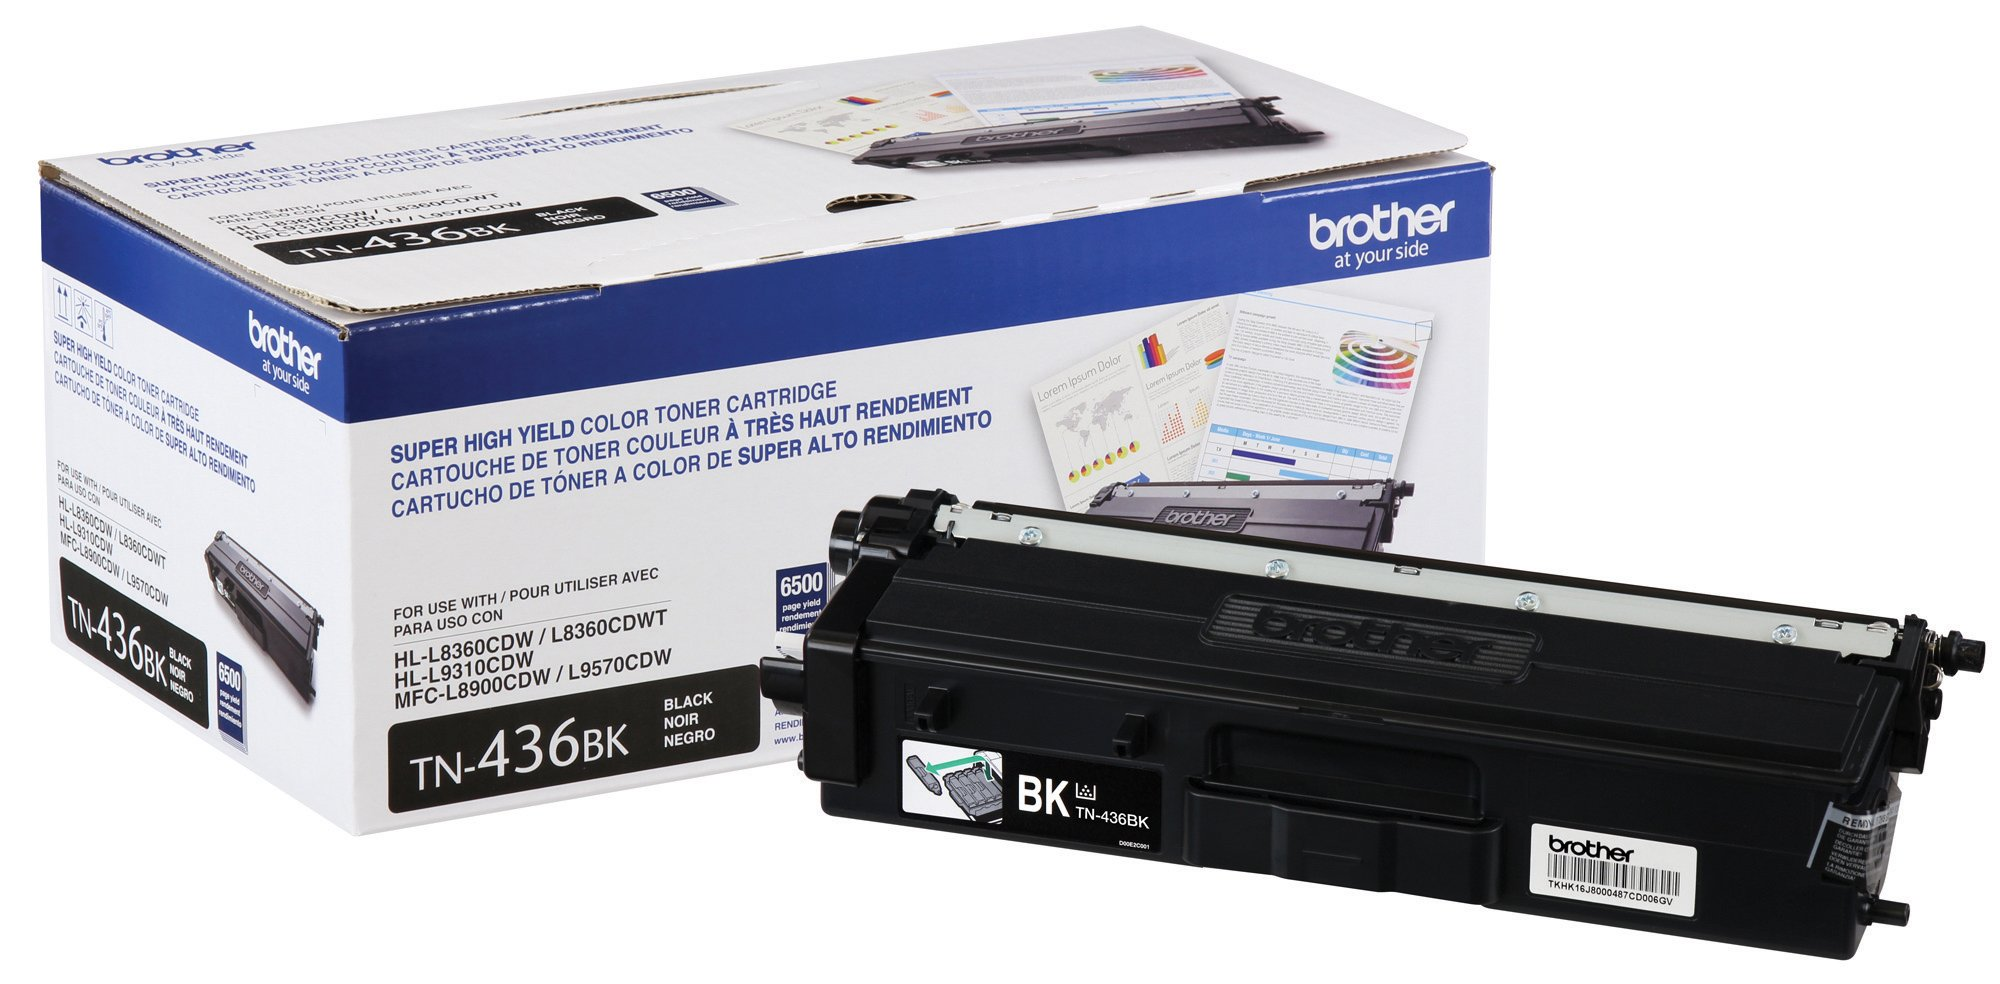 Brother Printer TN436BK Super High Yield Toner-Retail Packaging , Black